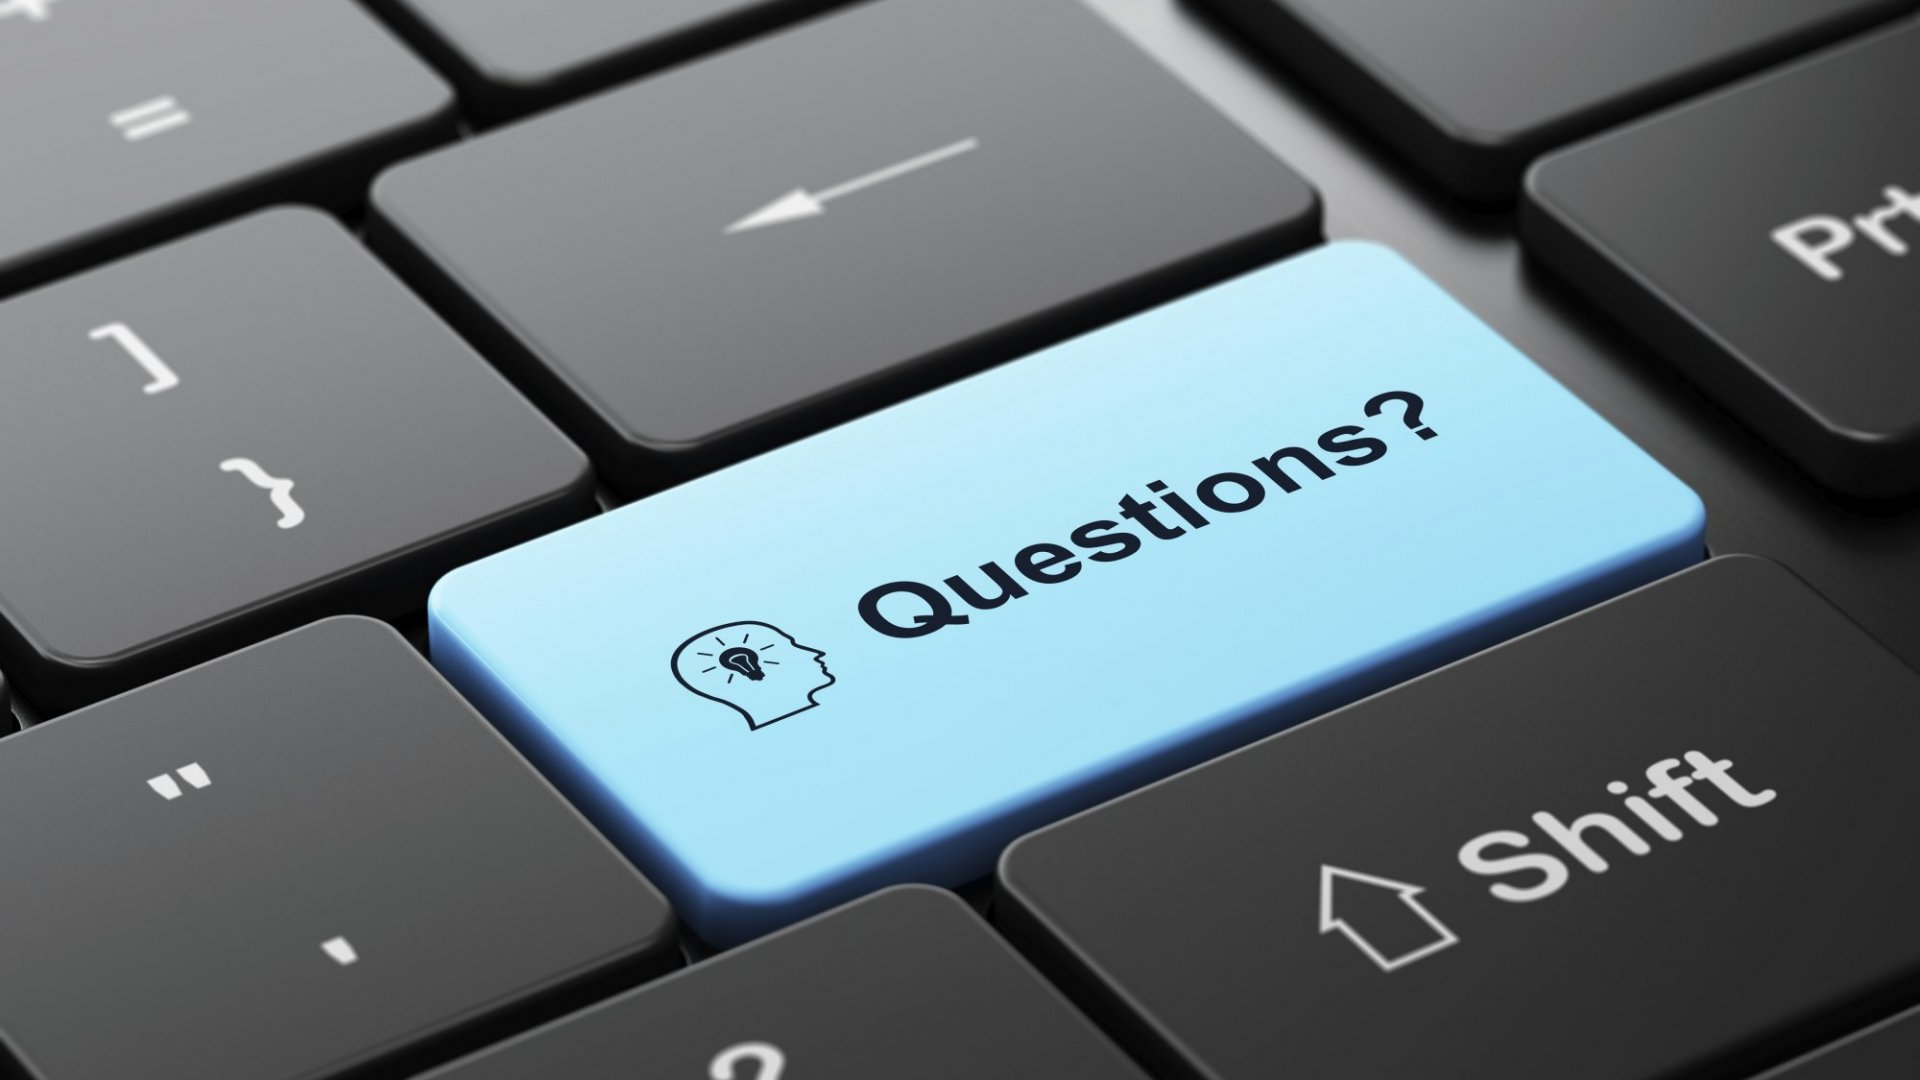 3 Questions That All Great Sales Messages Answer